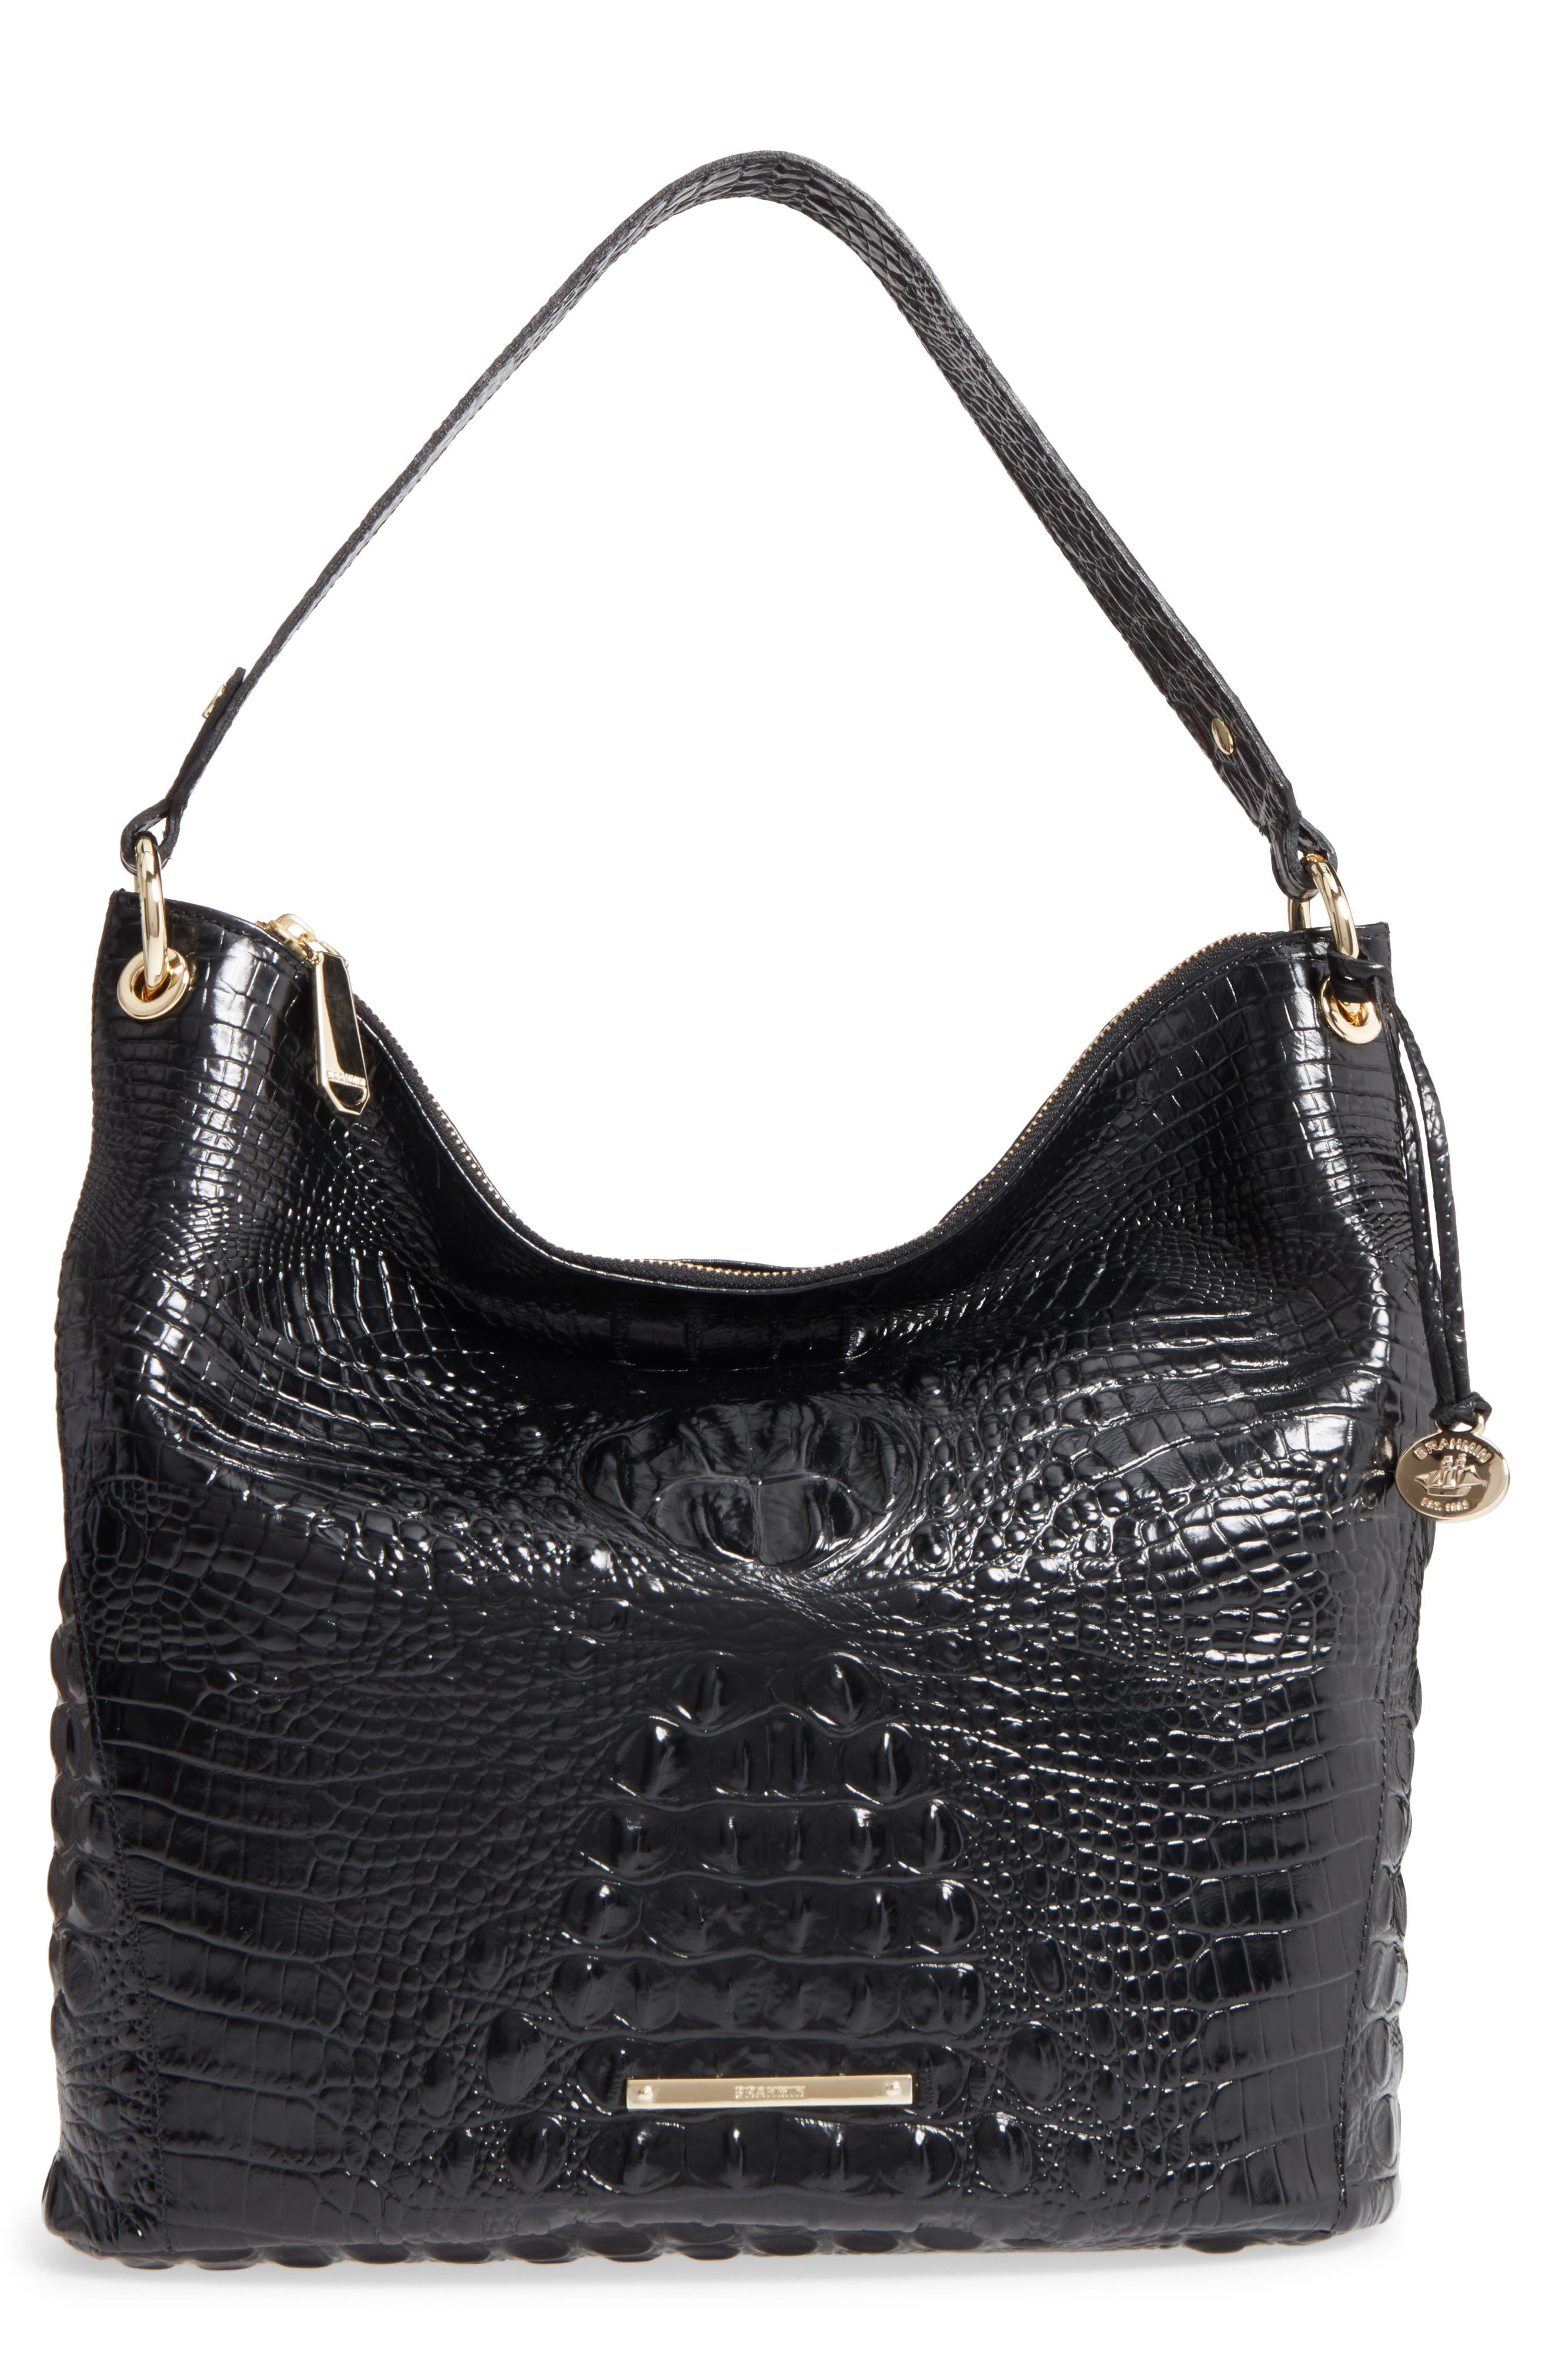 Melbourne Sevi Croc Embossed Leather Hobo,                             Main thumbnail 1, color,                             Black